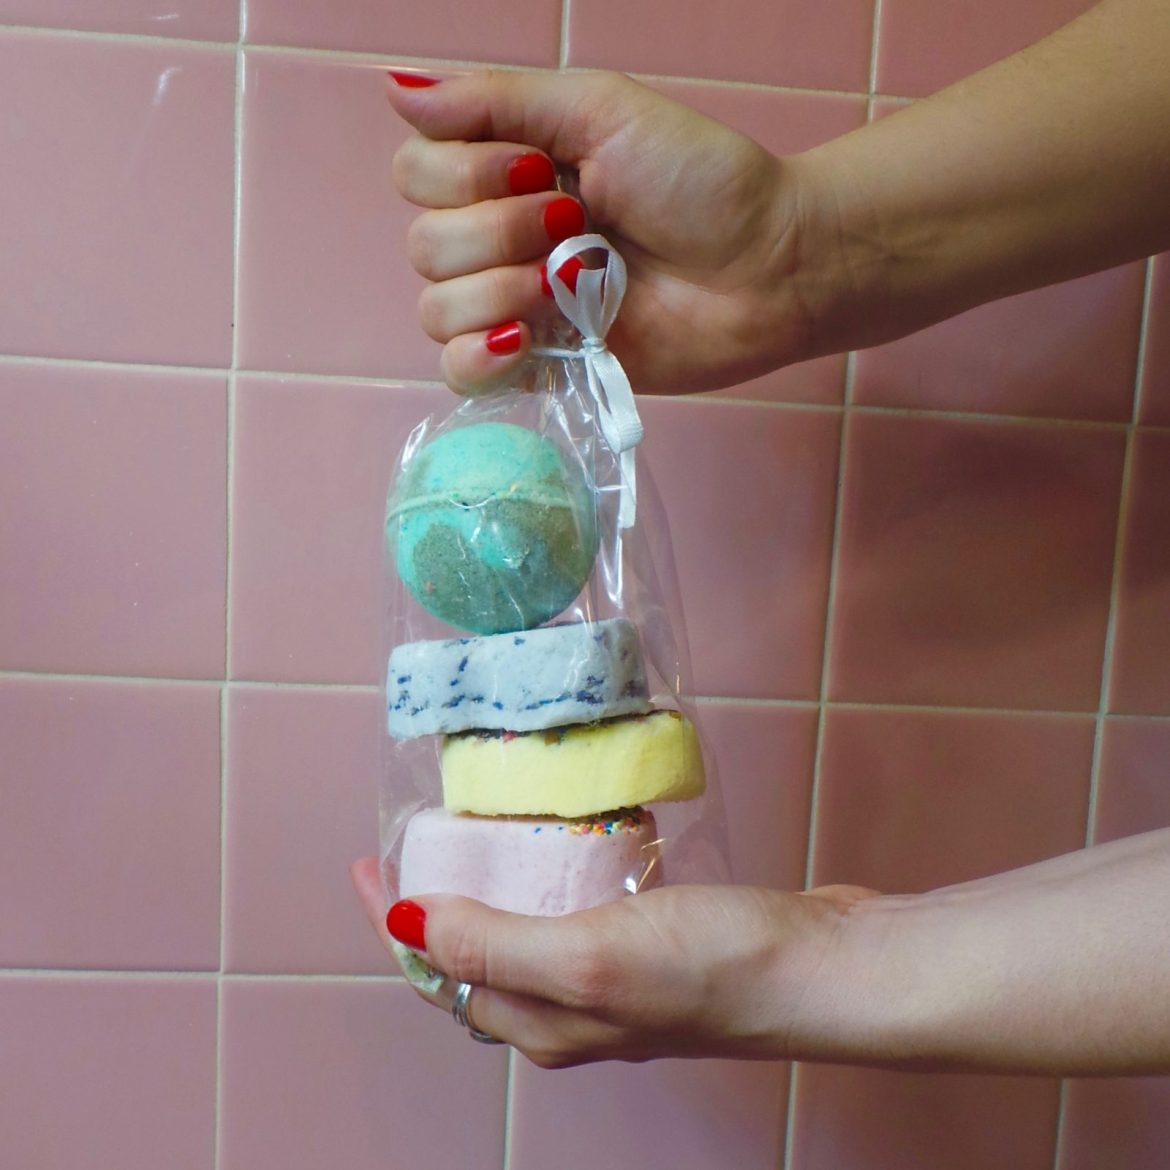 Unleash Your Creative Genius with DIY Bath Bombs